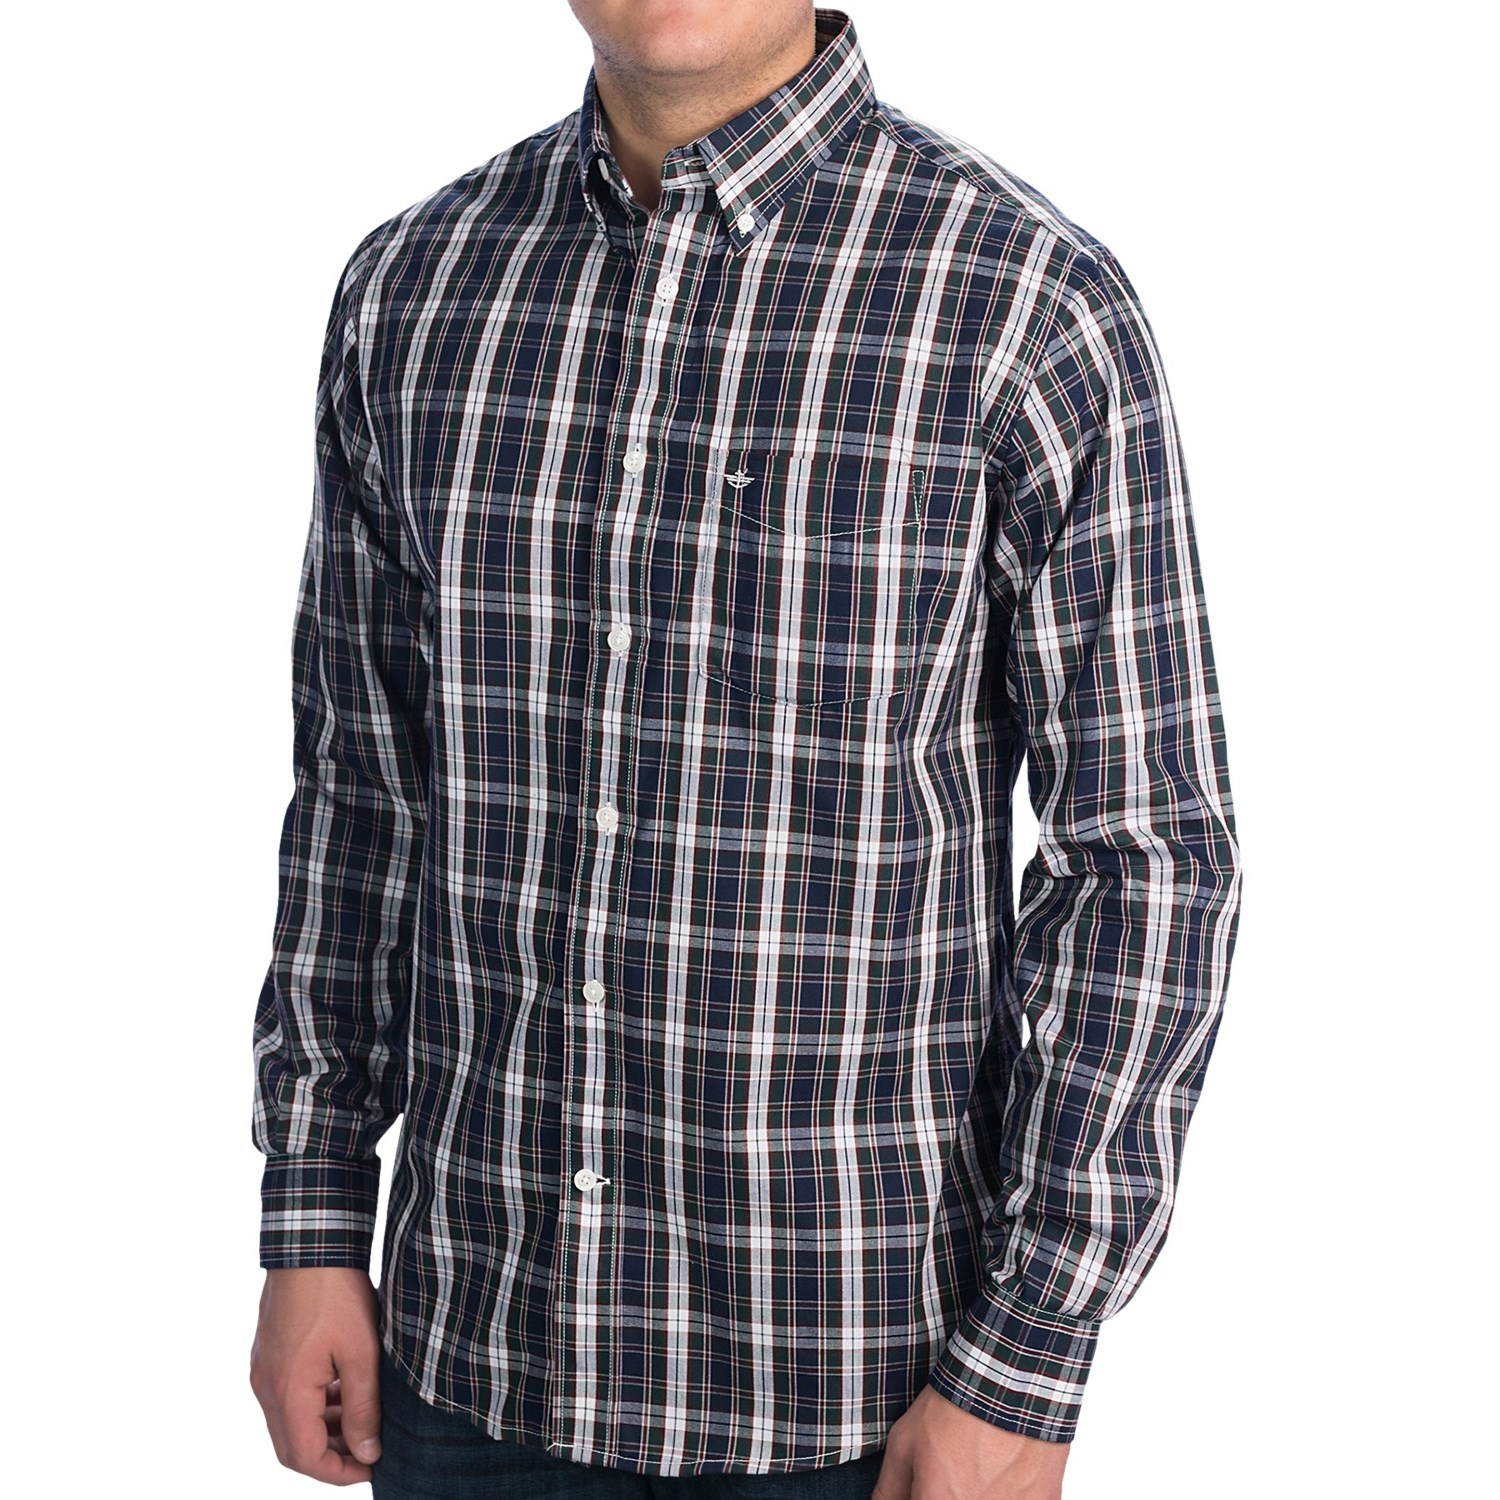 Dockers soft no wrinkle check shirt long sleeve for men for Dockers wrinkle free shirts